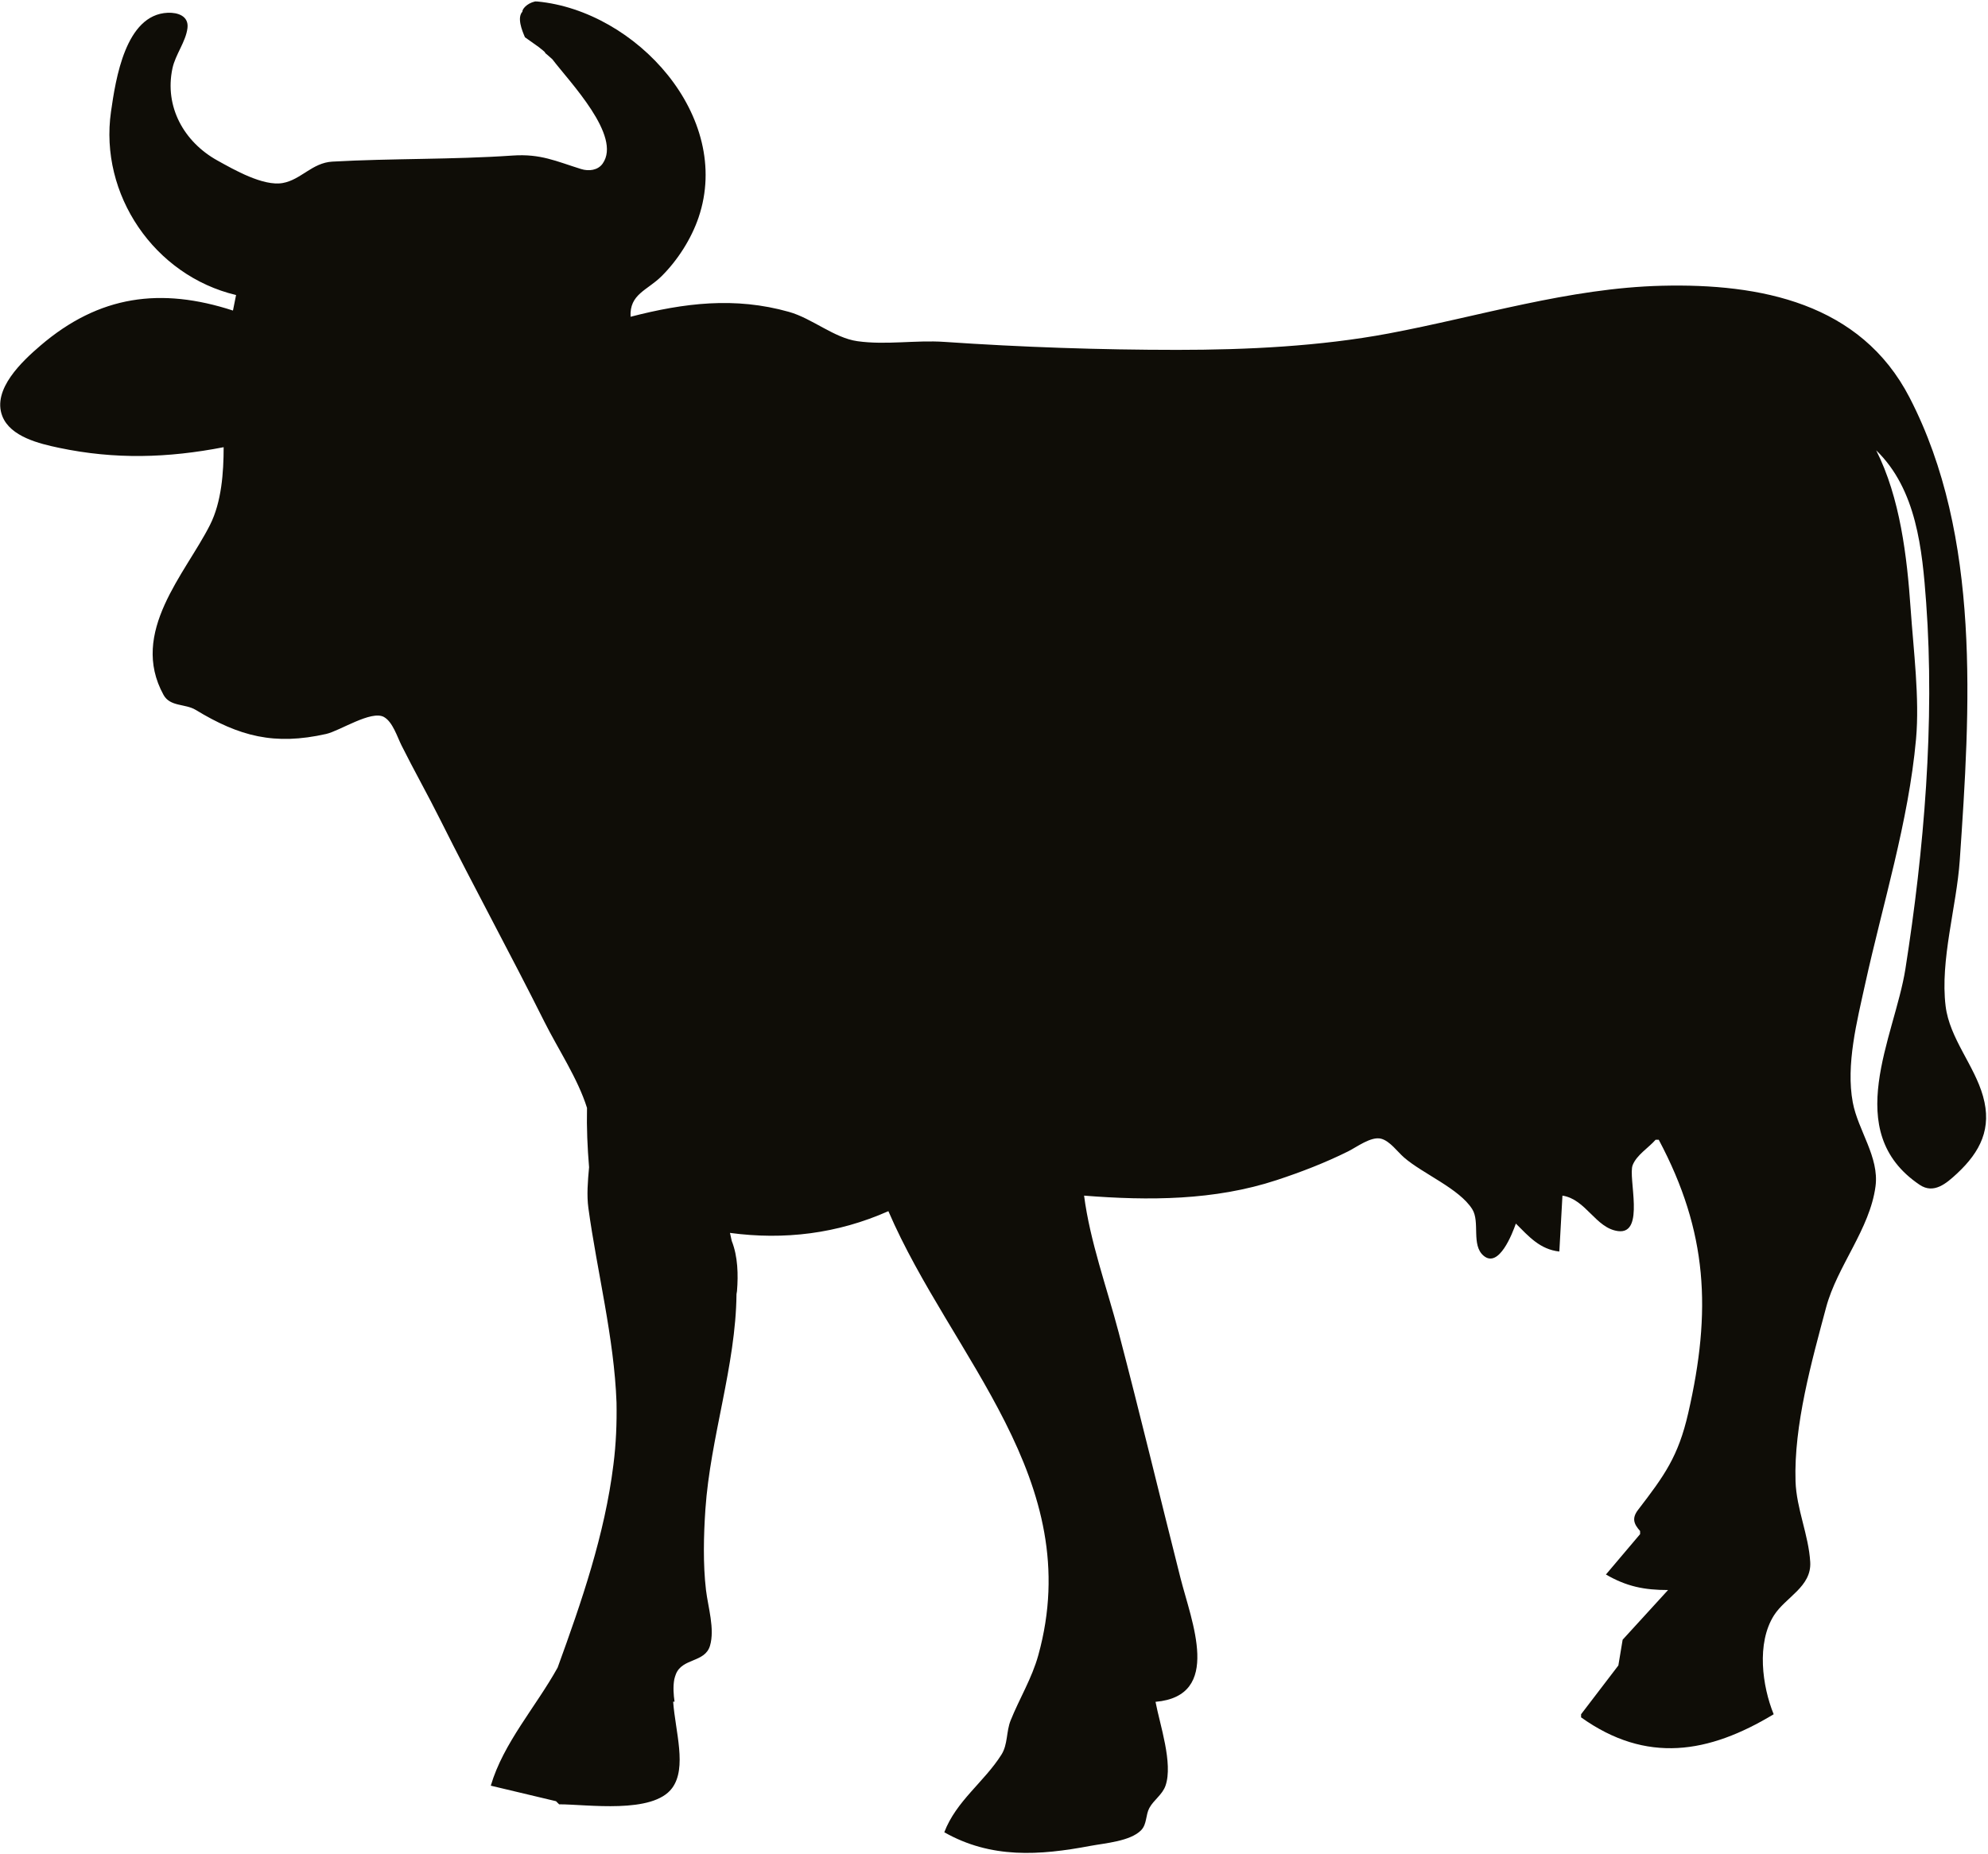 Cow clipart home. Silhouette cliparts free download